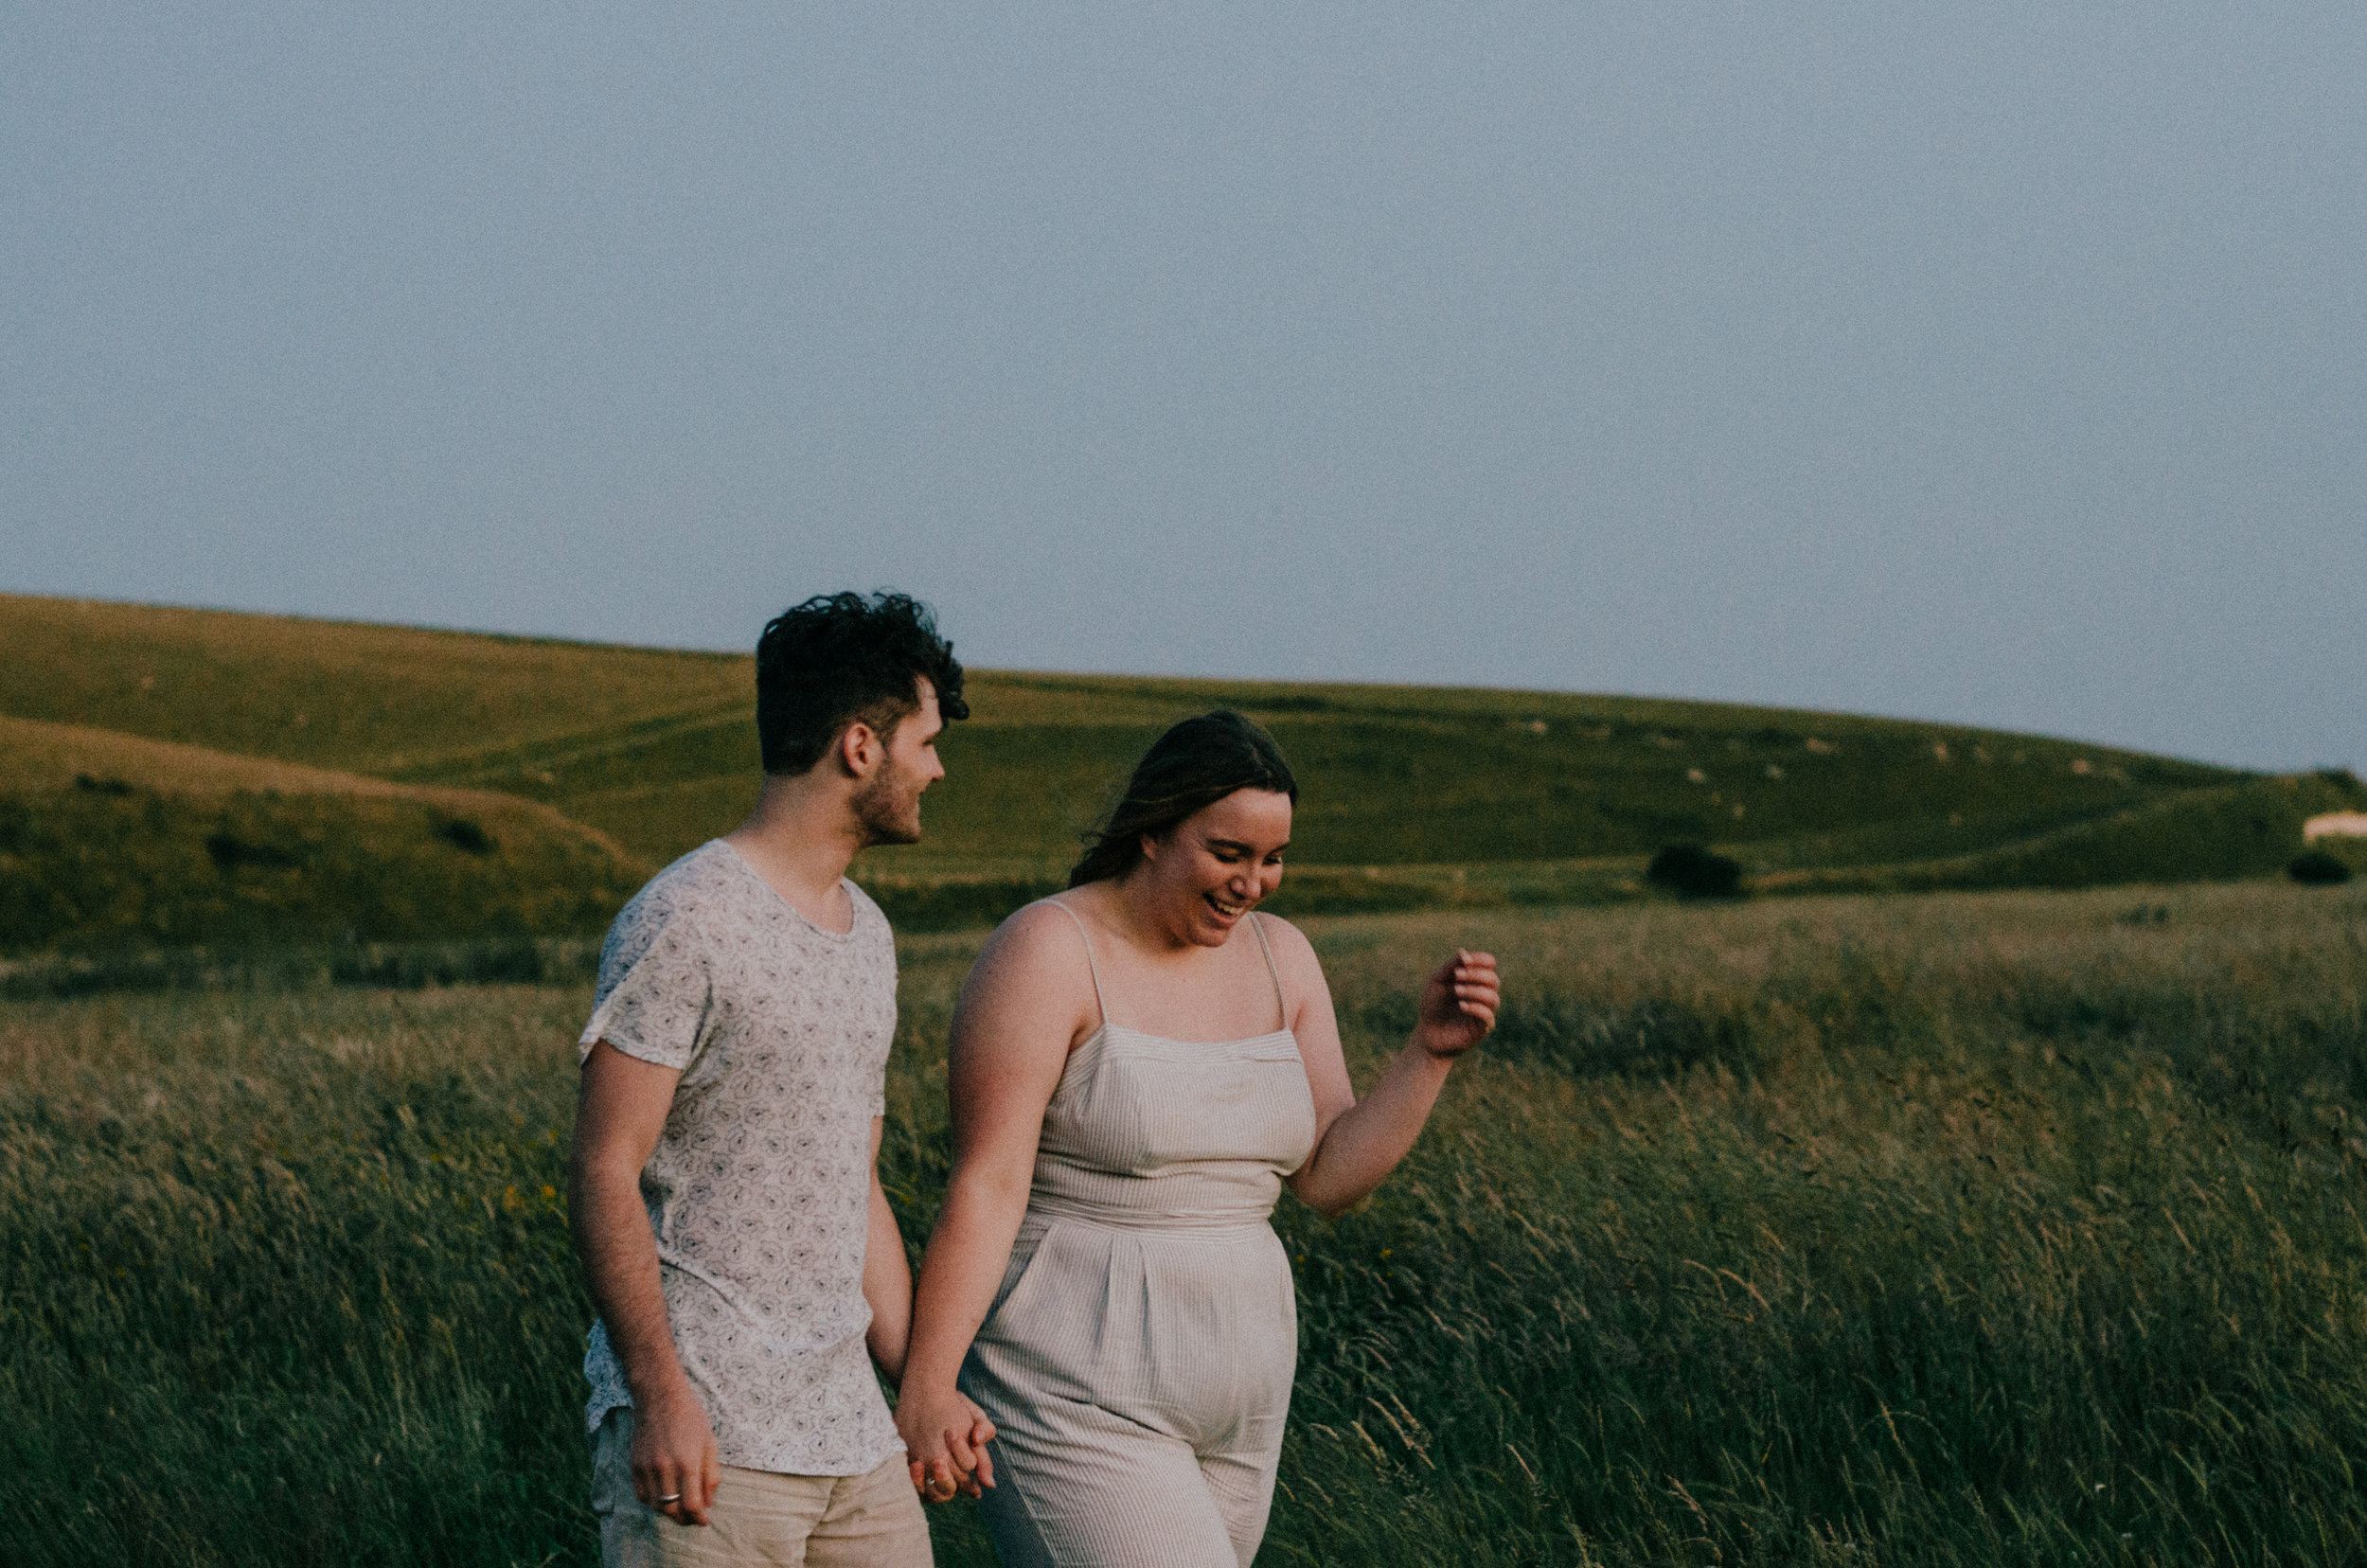 Rebecca & Dougie - Cuckmere Haven - Couple Session - Aiste Saulyte Photography-191.jpg